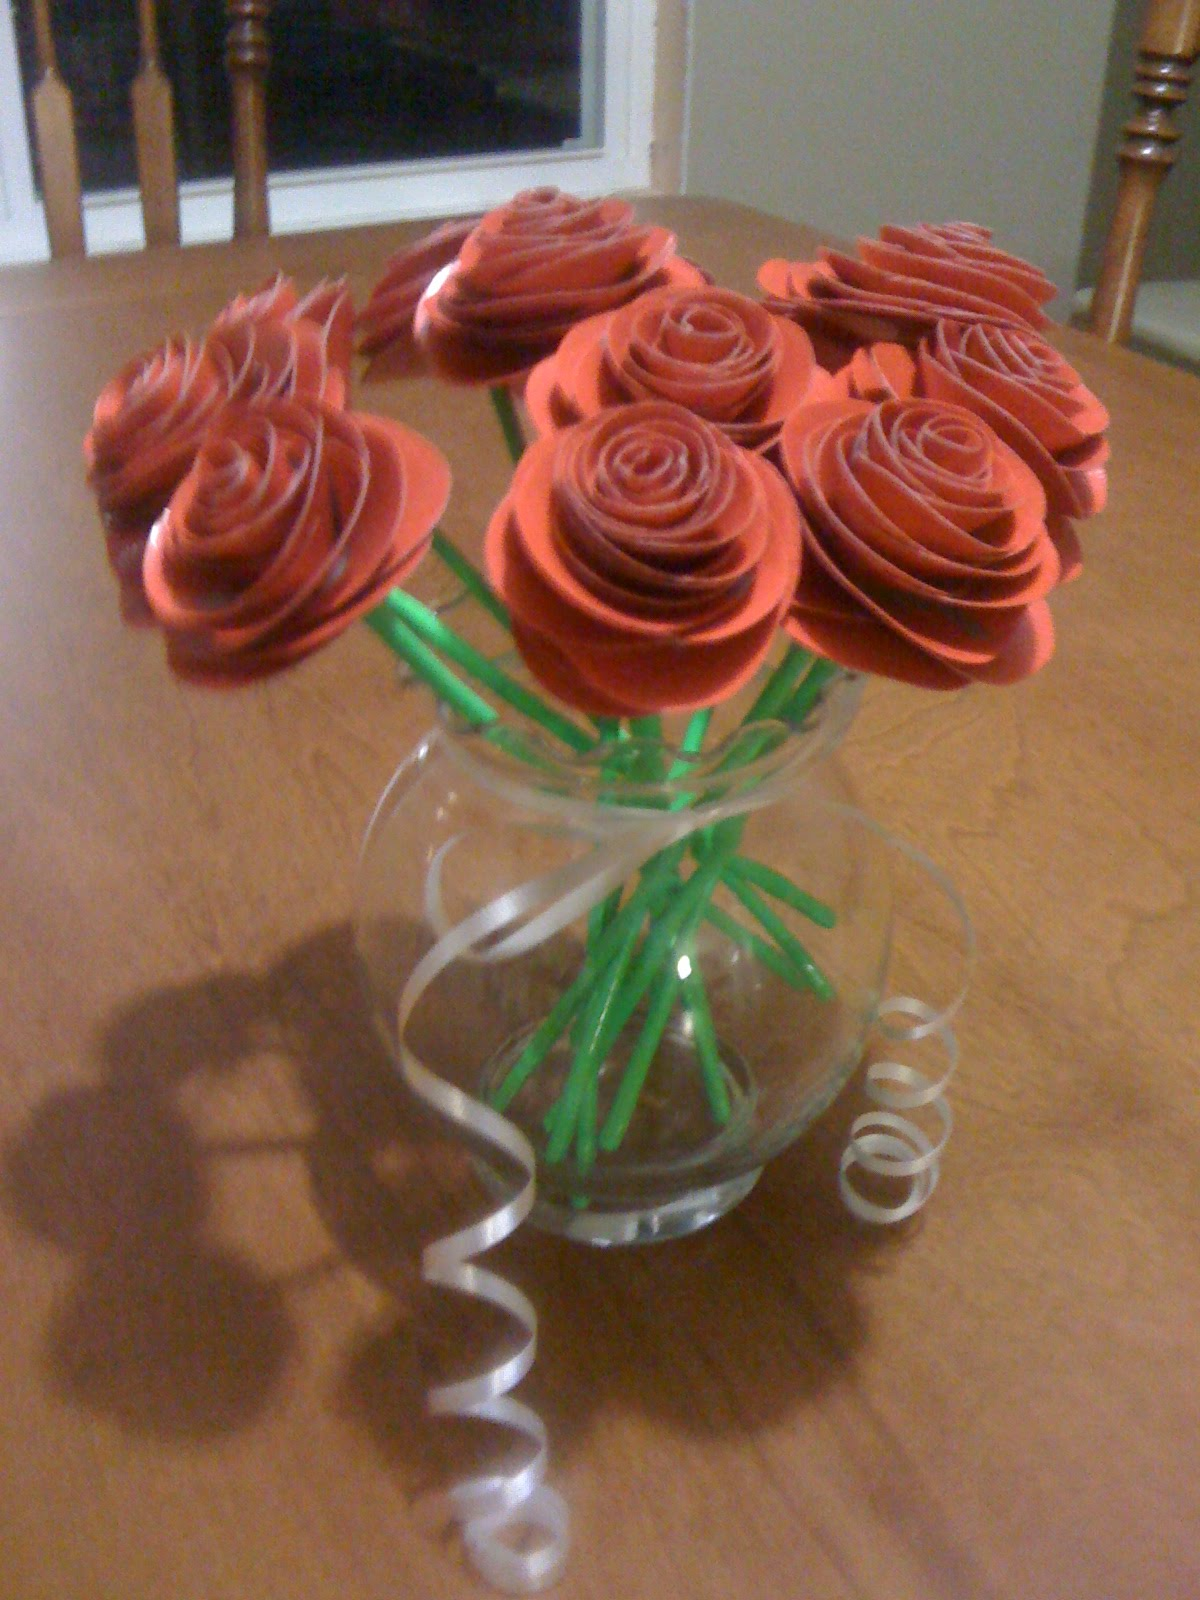 'Duct Tape Creations' at Crandall Library |Duct Tape Creations